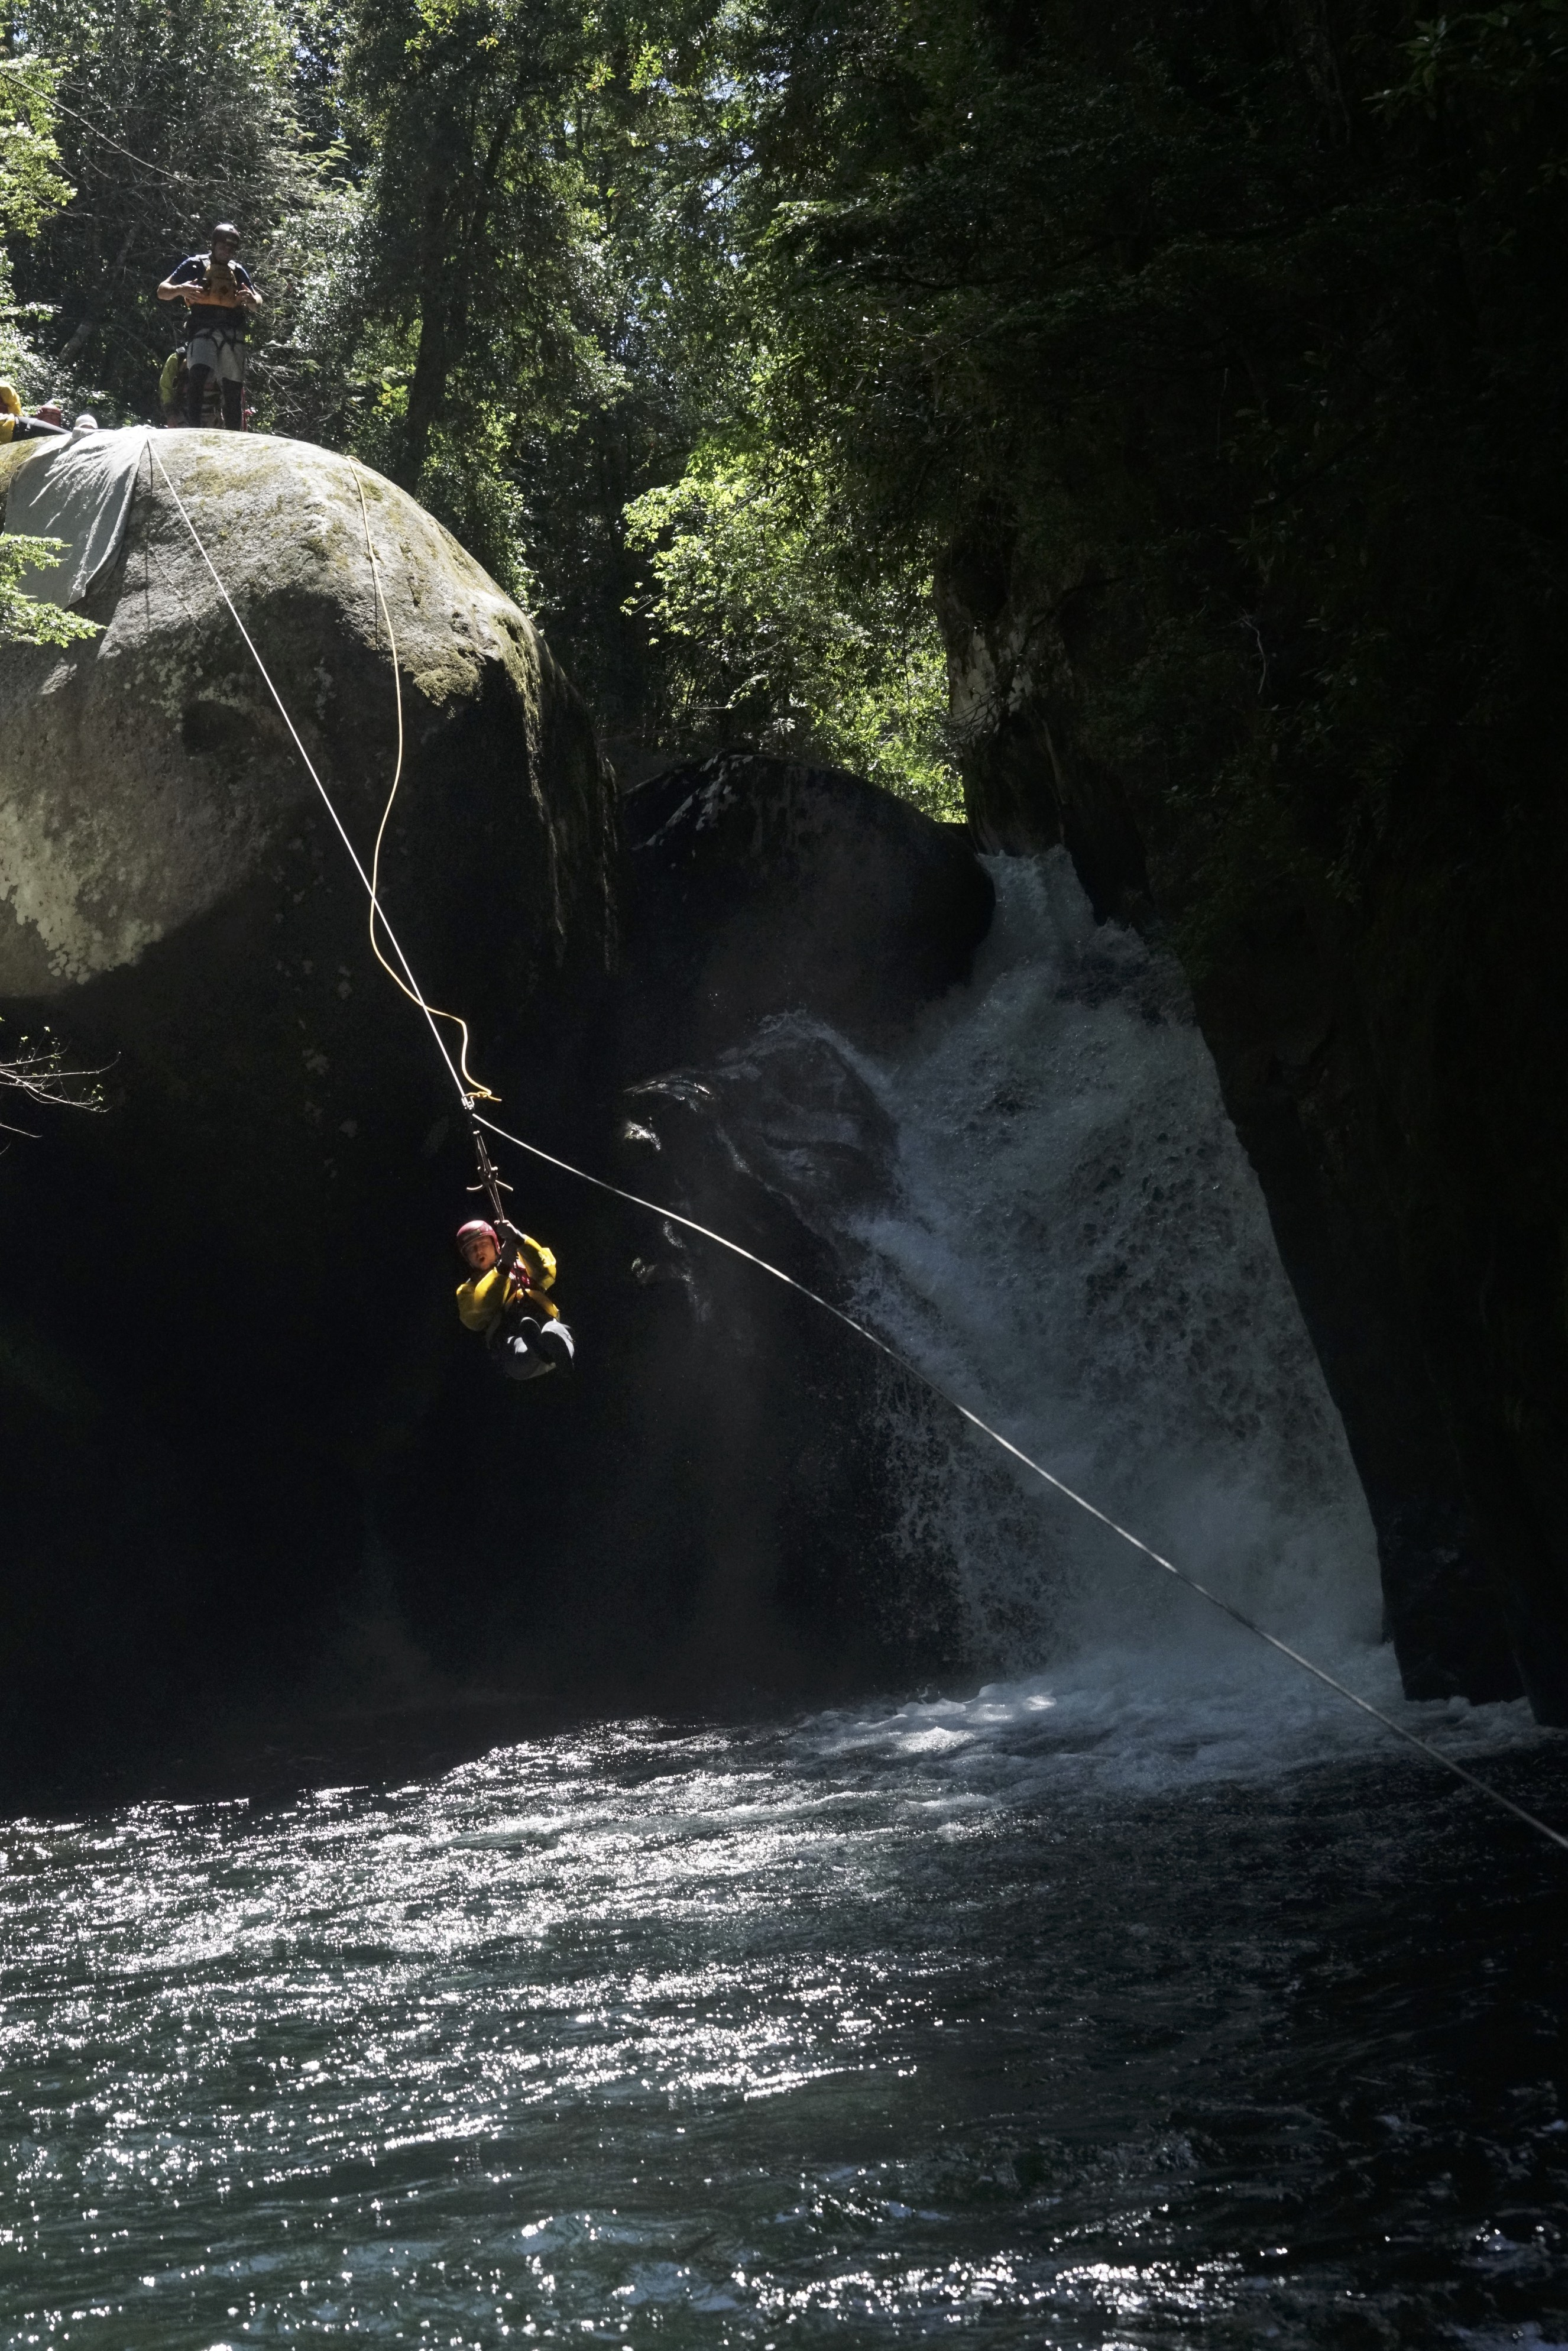 Canyoneering one of our most cherished waterfall runs.